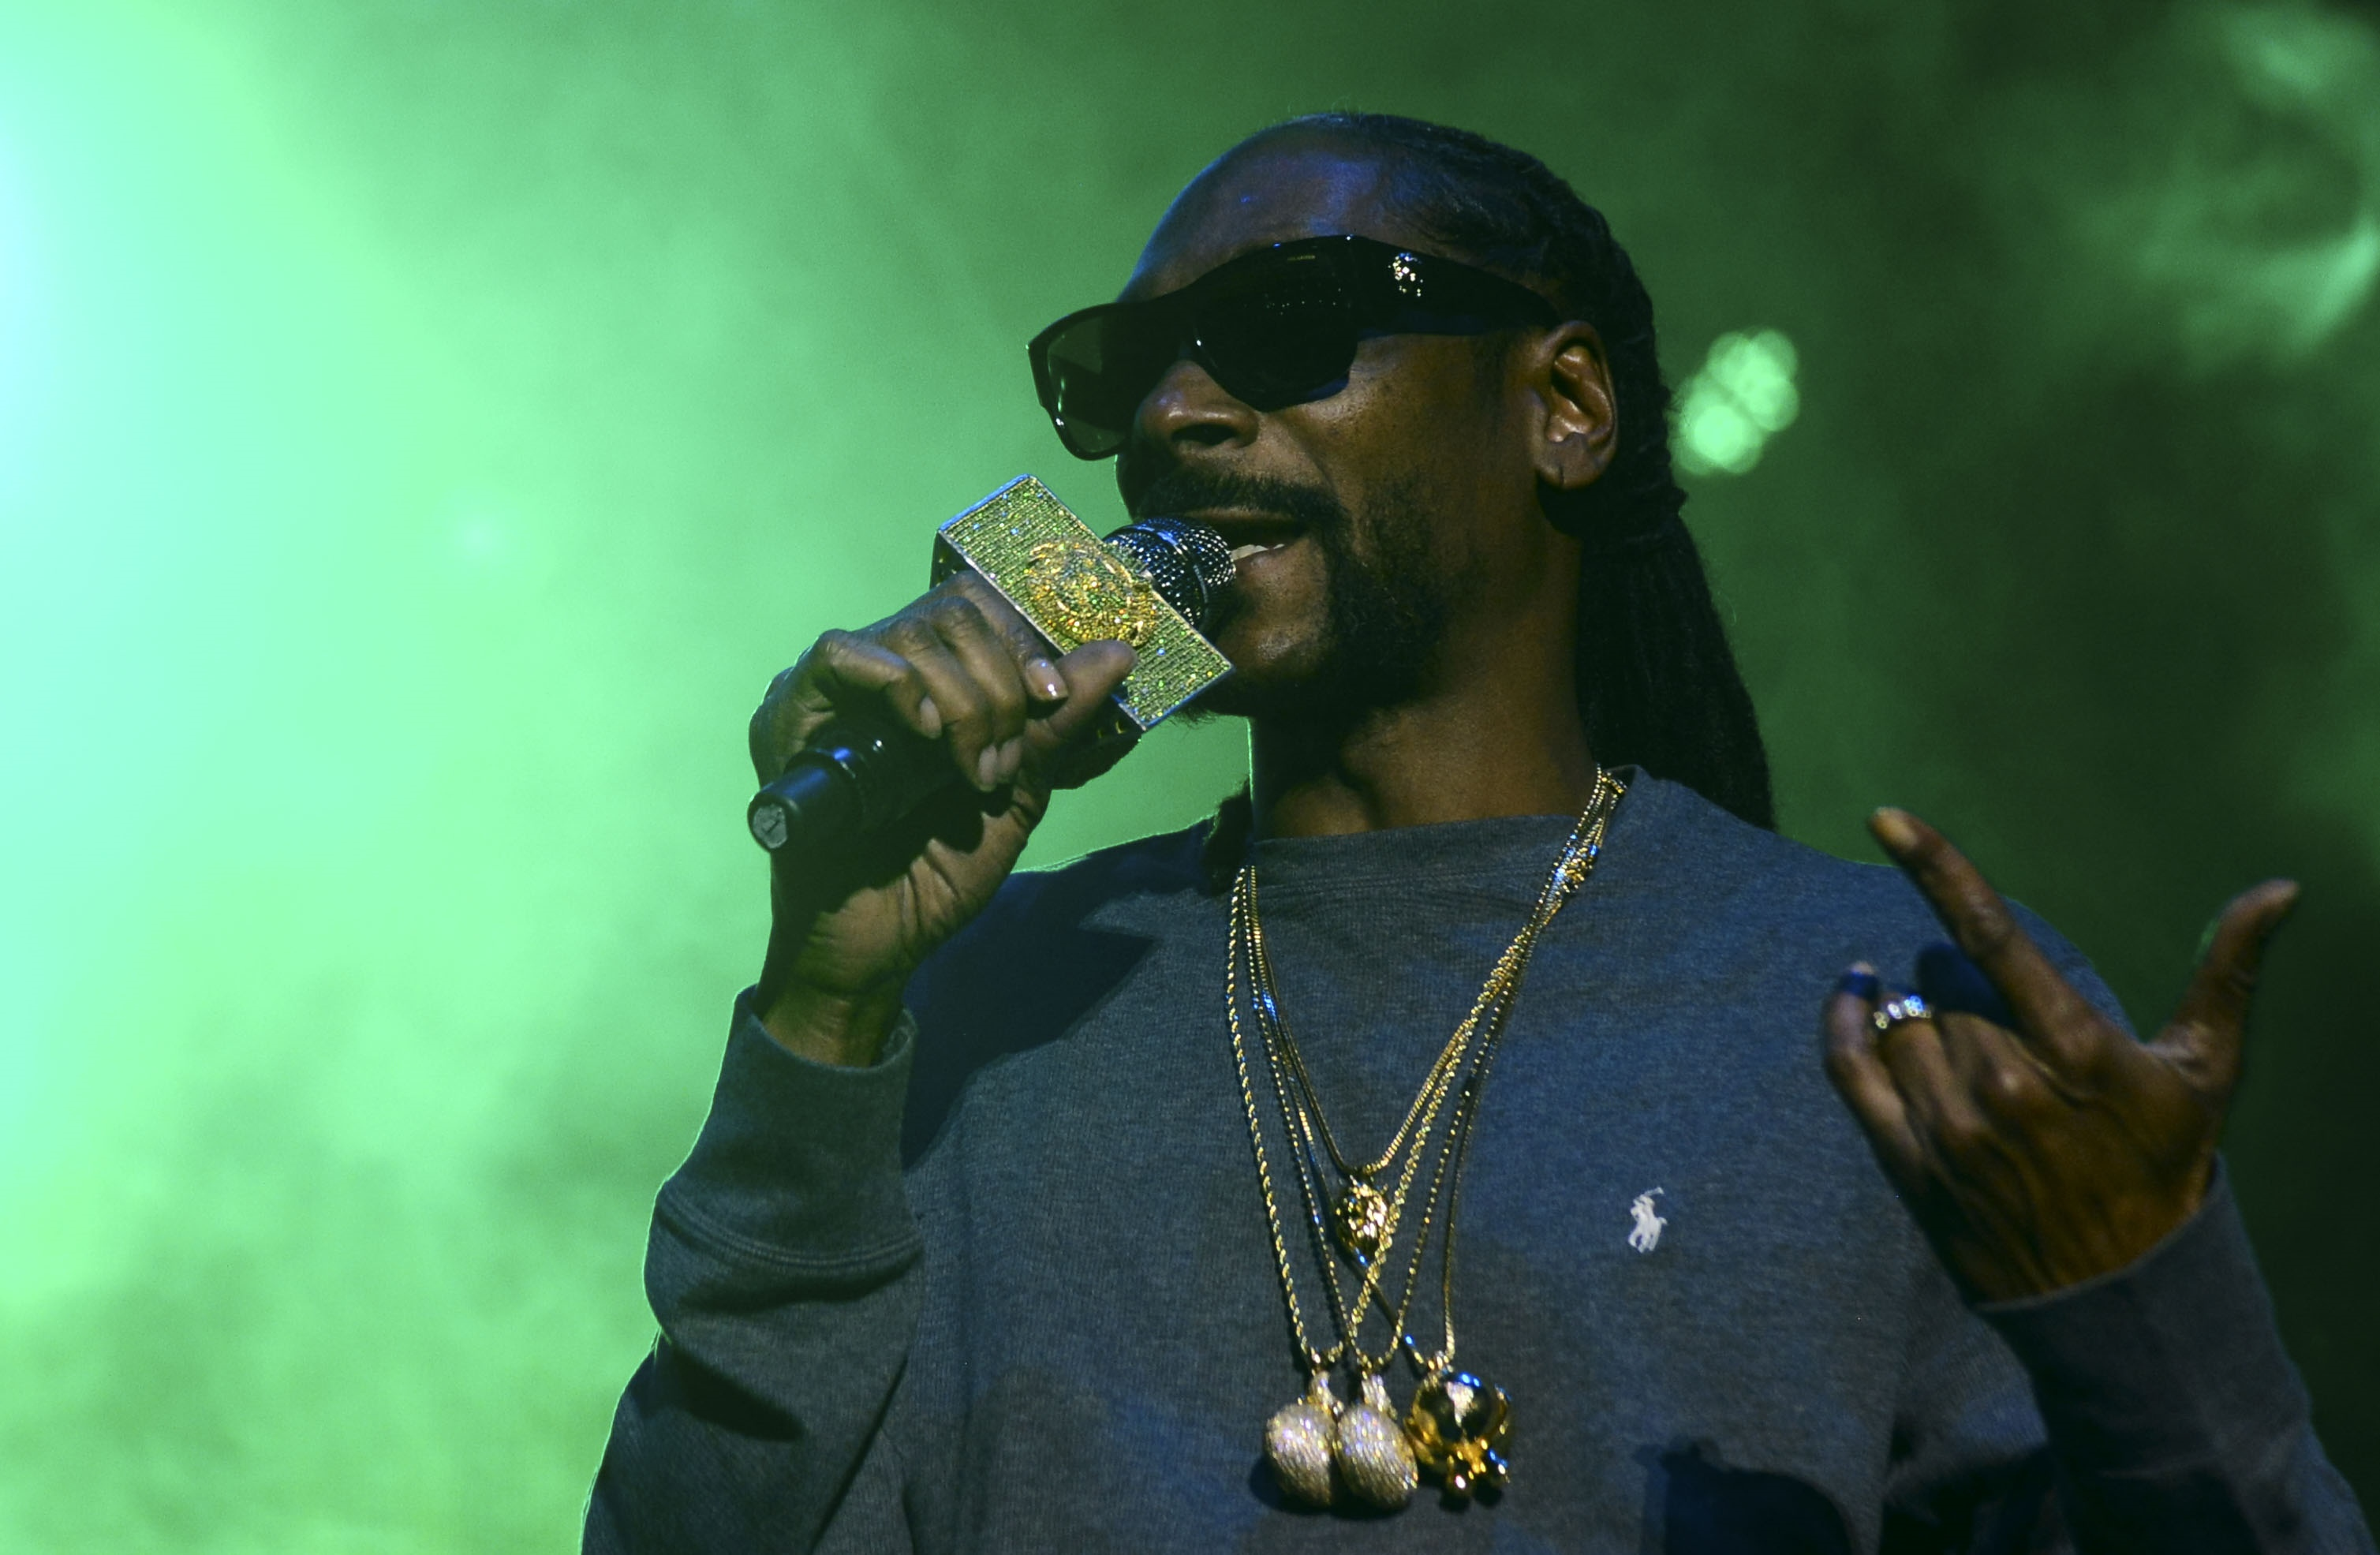 Rapper Snoop Dogg performs at Macarena bullring in Medellin, Antioquia department, Colombia on March 11.